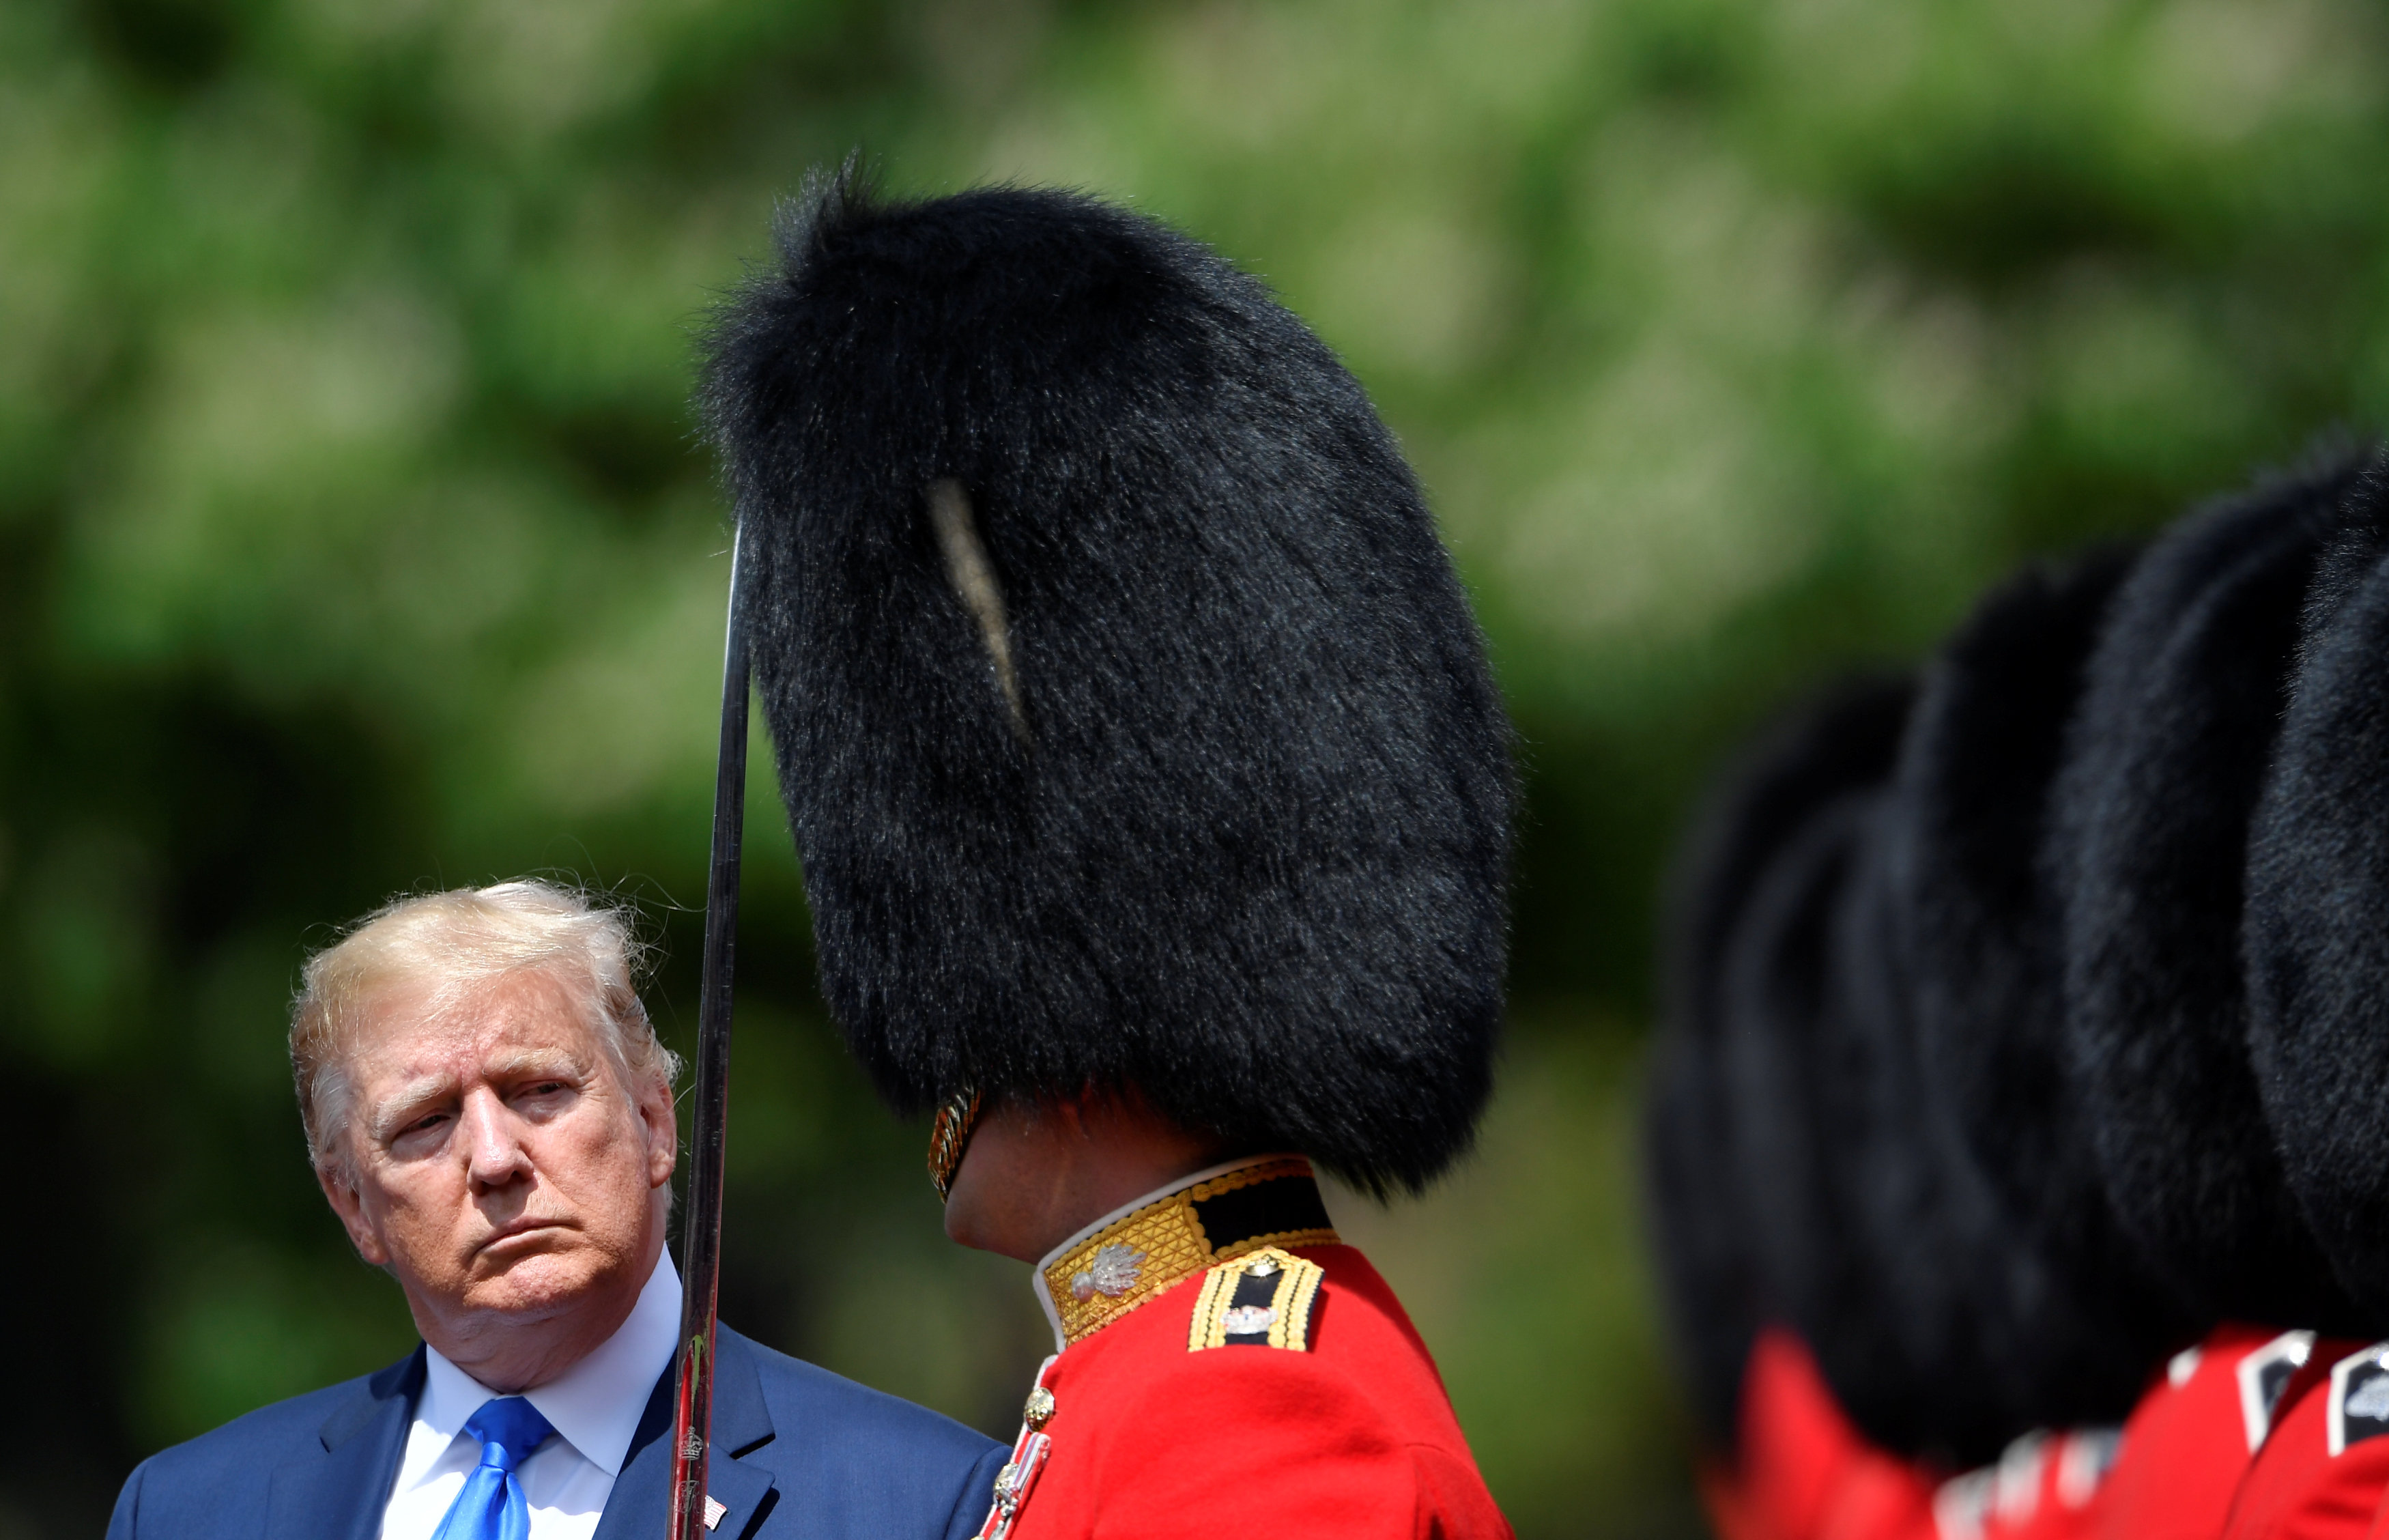 The US President inspects a royal guard